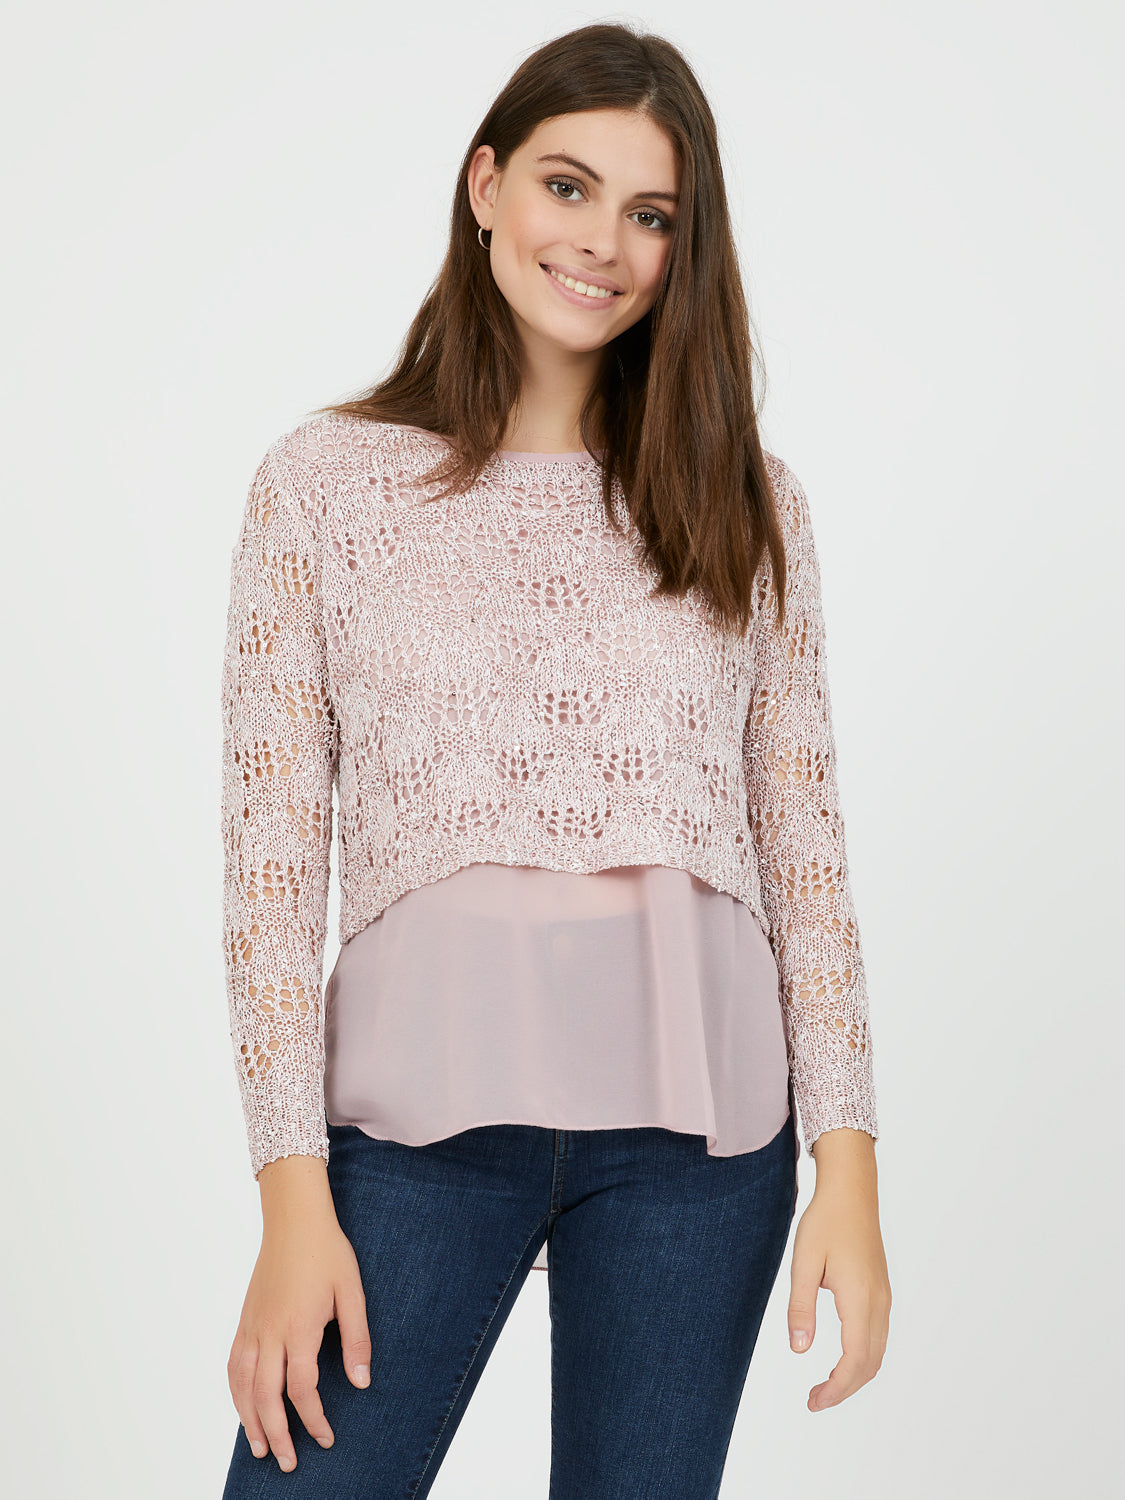 Scoop Neck Crochet & Chiffon Top